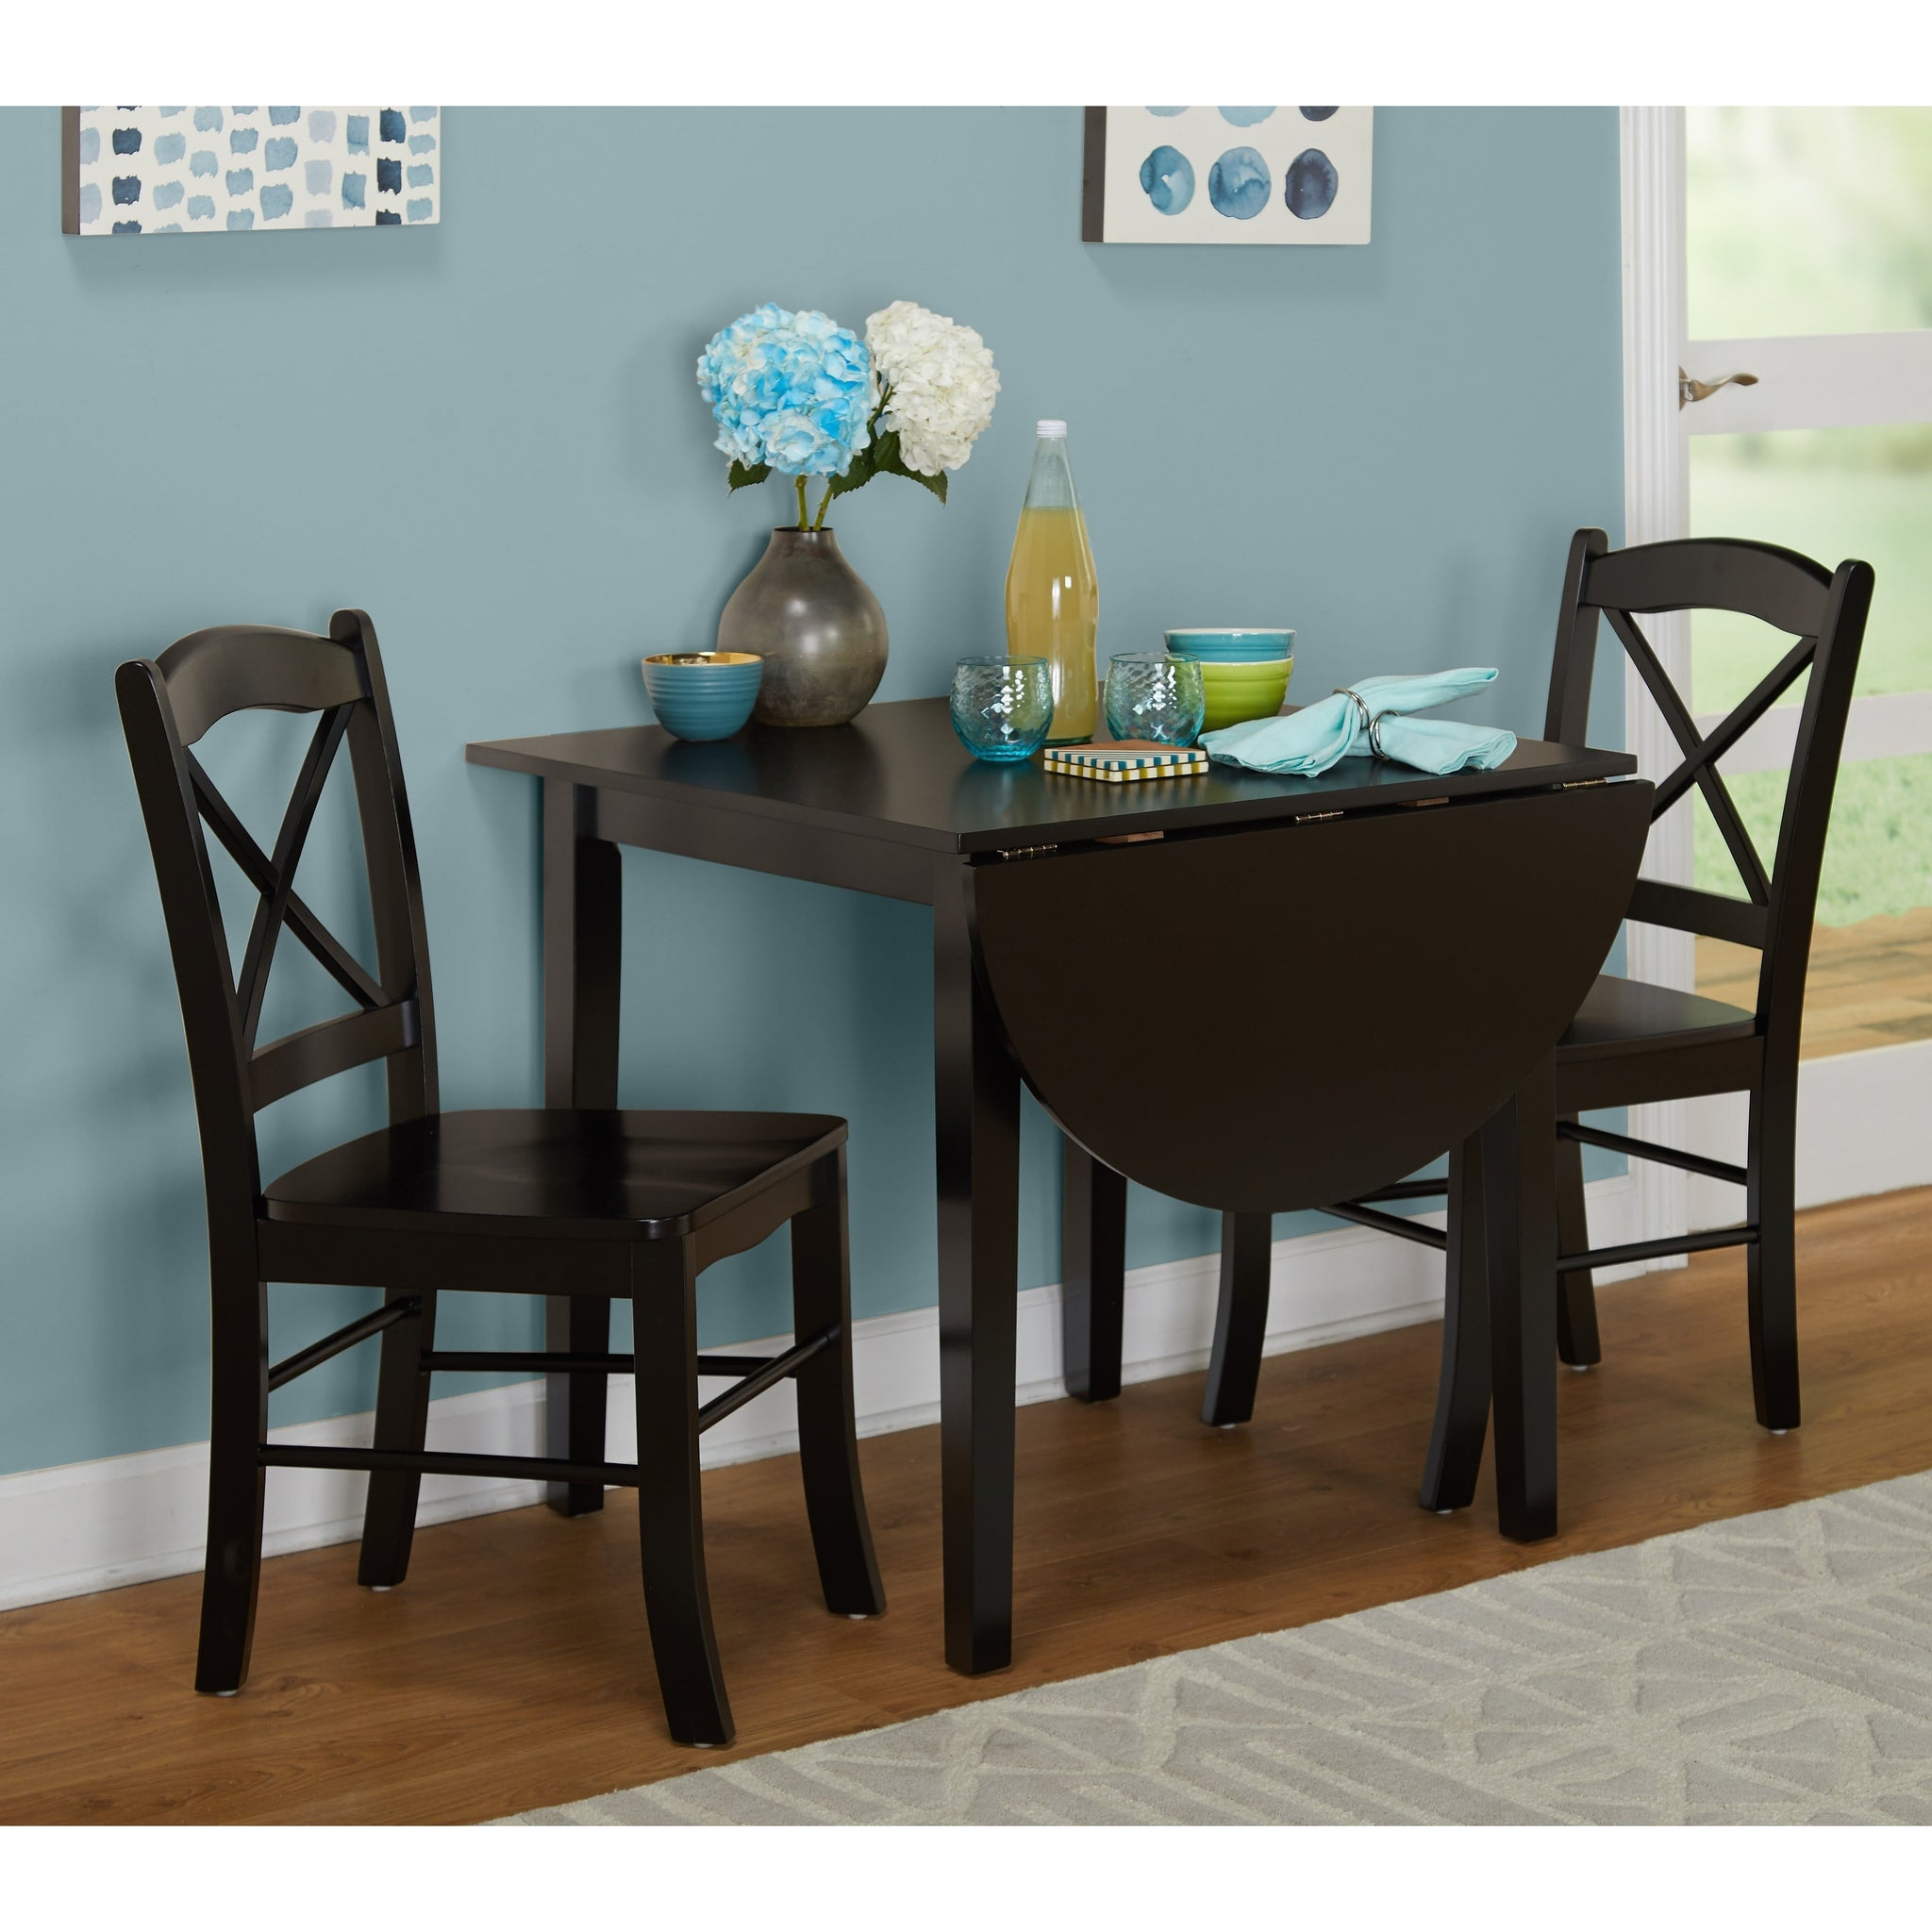 Three Piece Country Cottage Dining Set